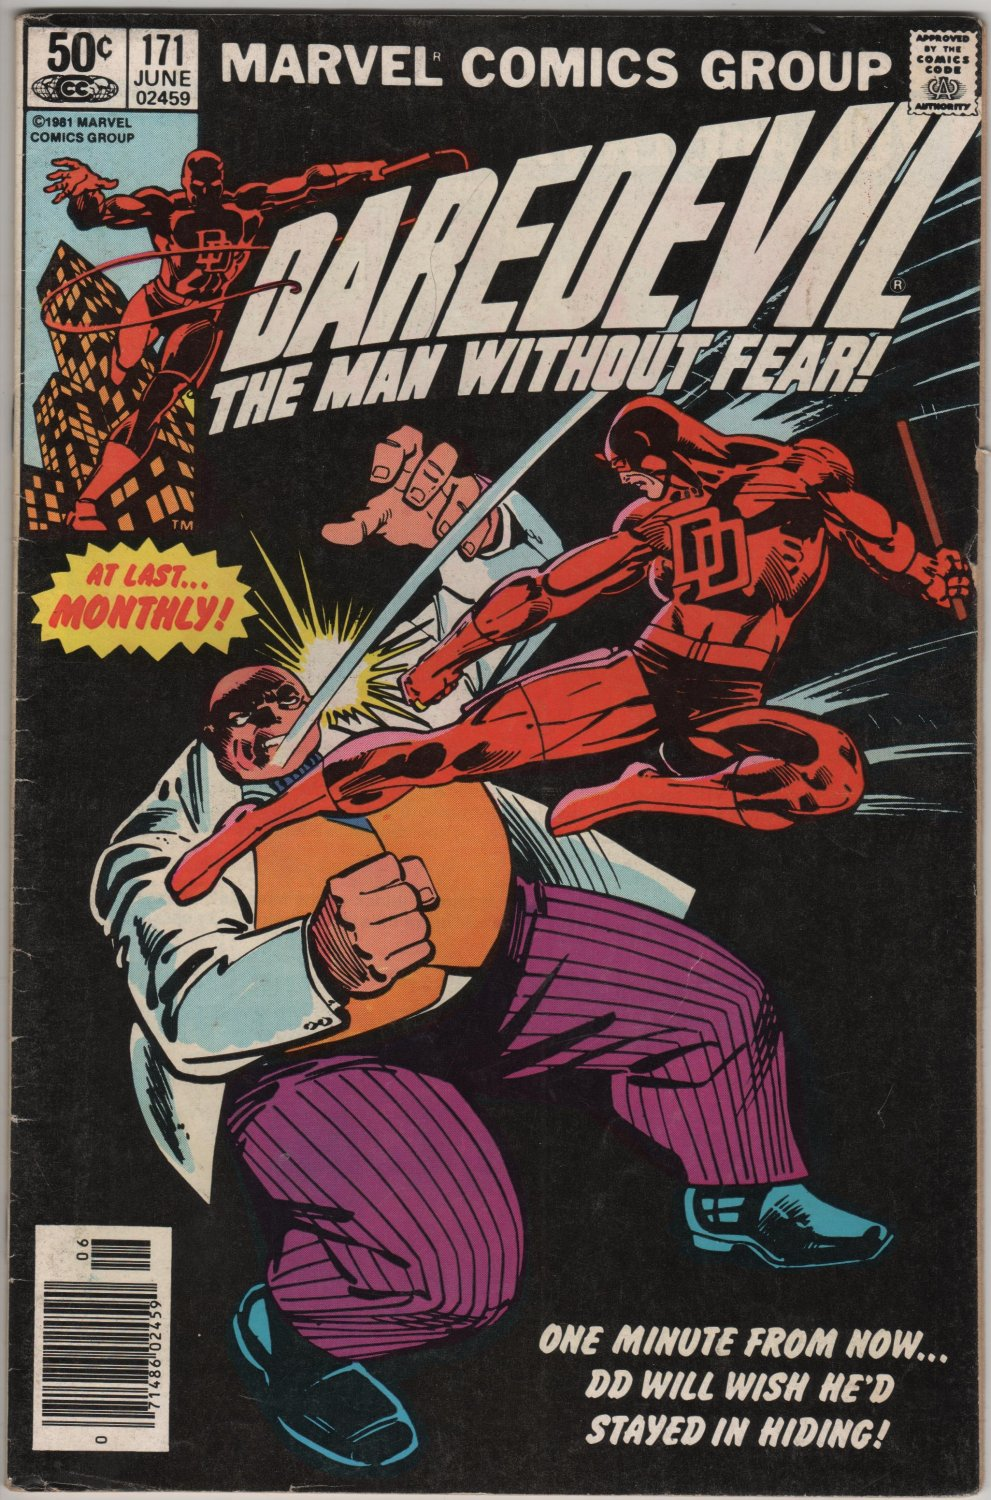 Daredevil #171 One Minute From Now c.1981